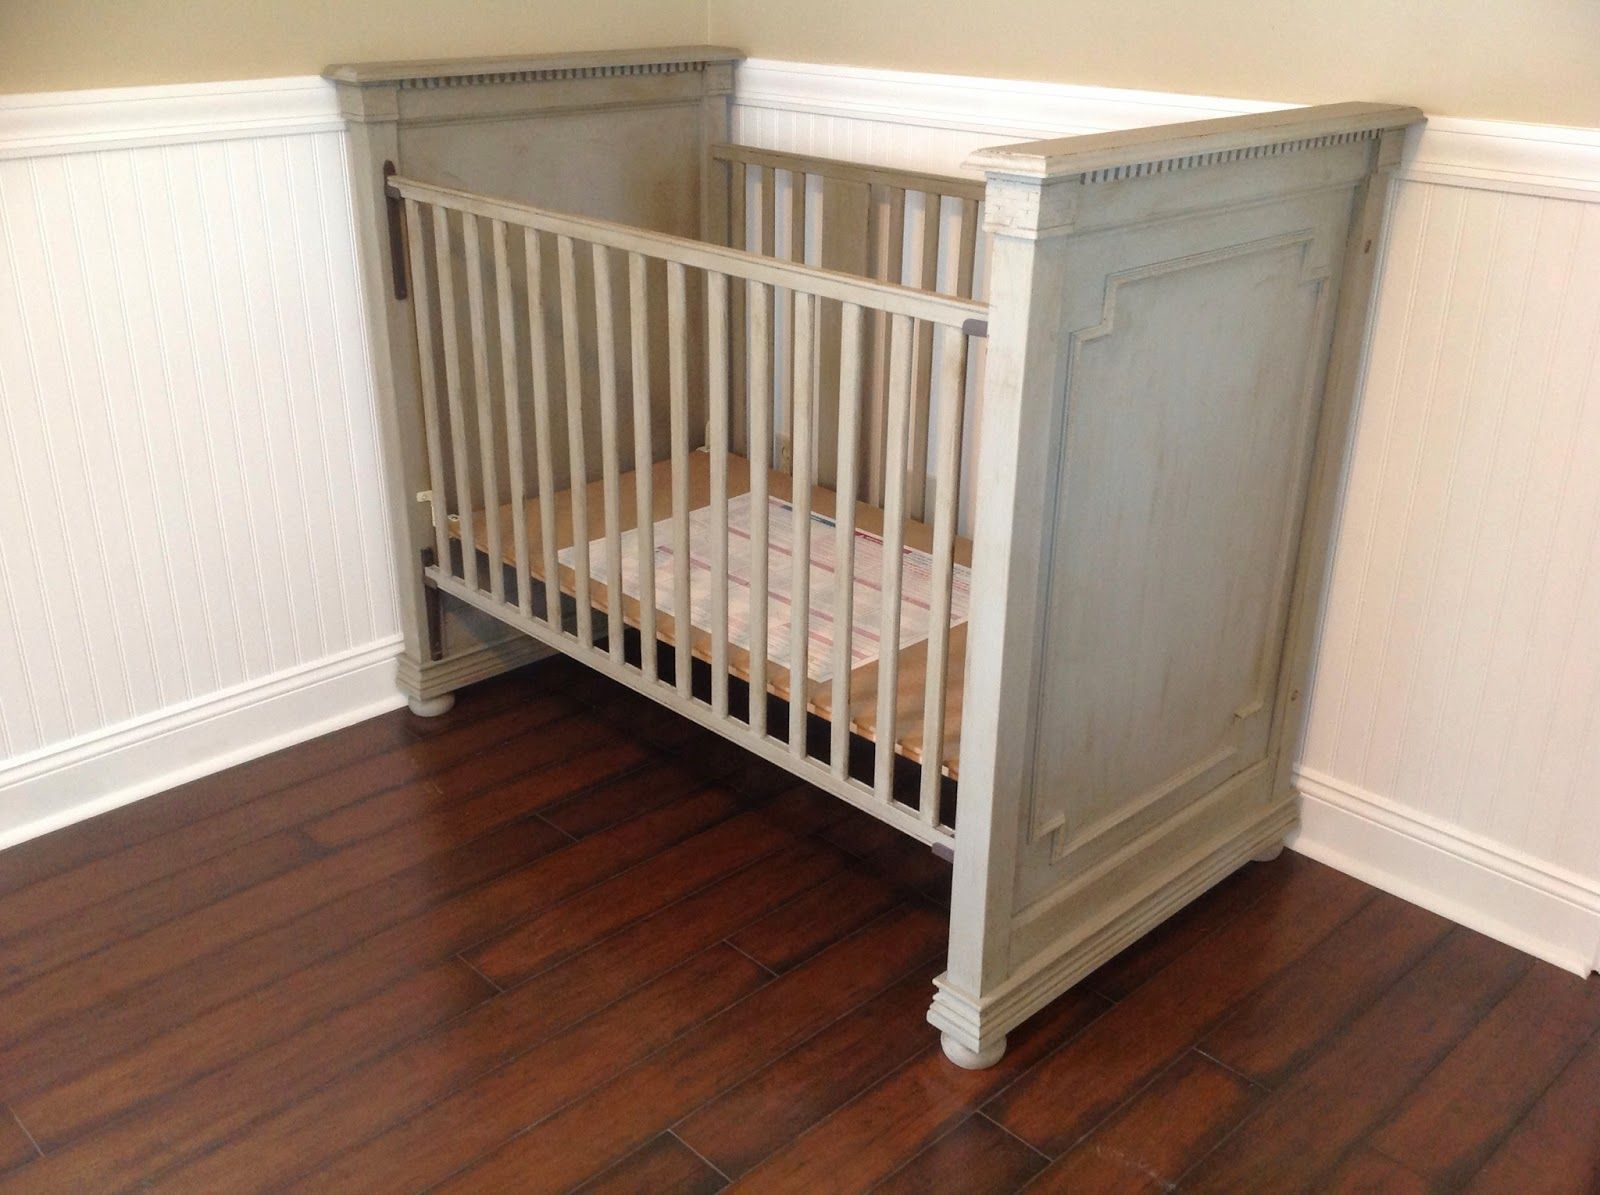 Jameson panel crib for sale - Along With Then Restoration Hardware Bookcase I D Been Admiring I Was Also Falling In Love With Their Jameson Crib But Again It Was More T